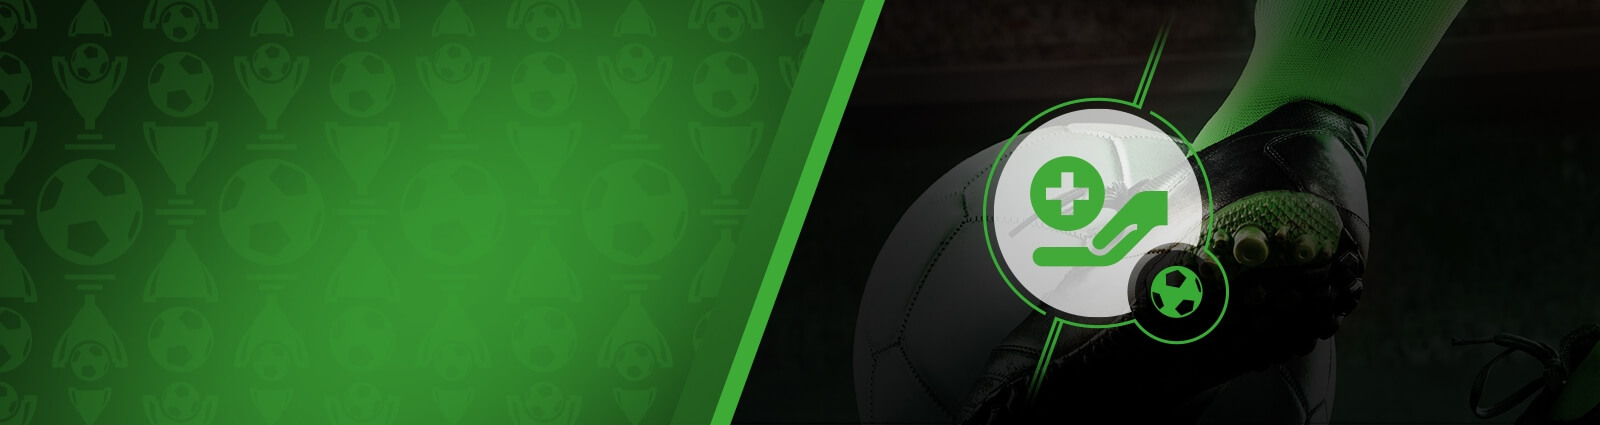 unibet - sports betting online casino games and poker